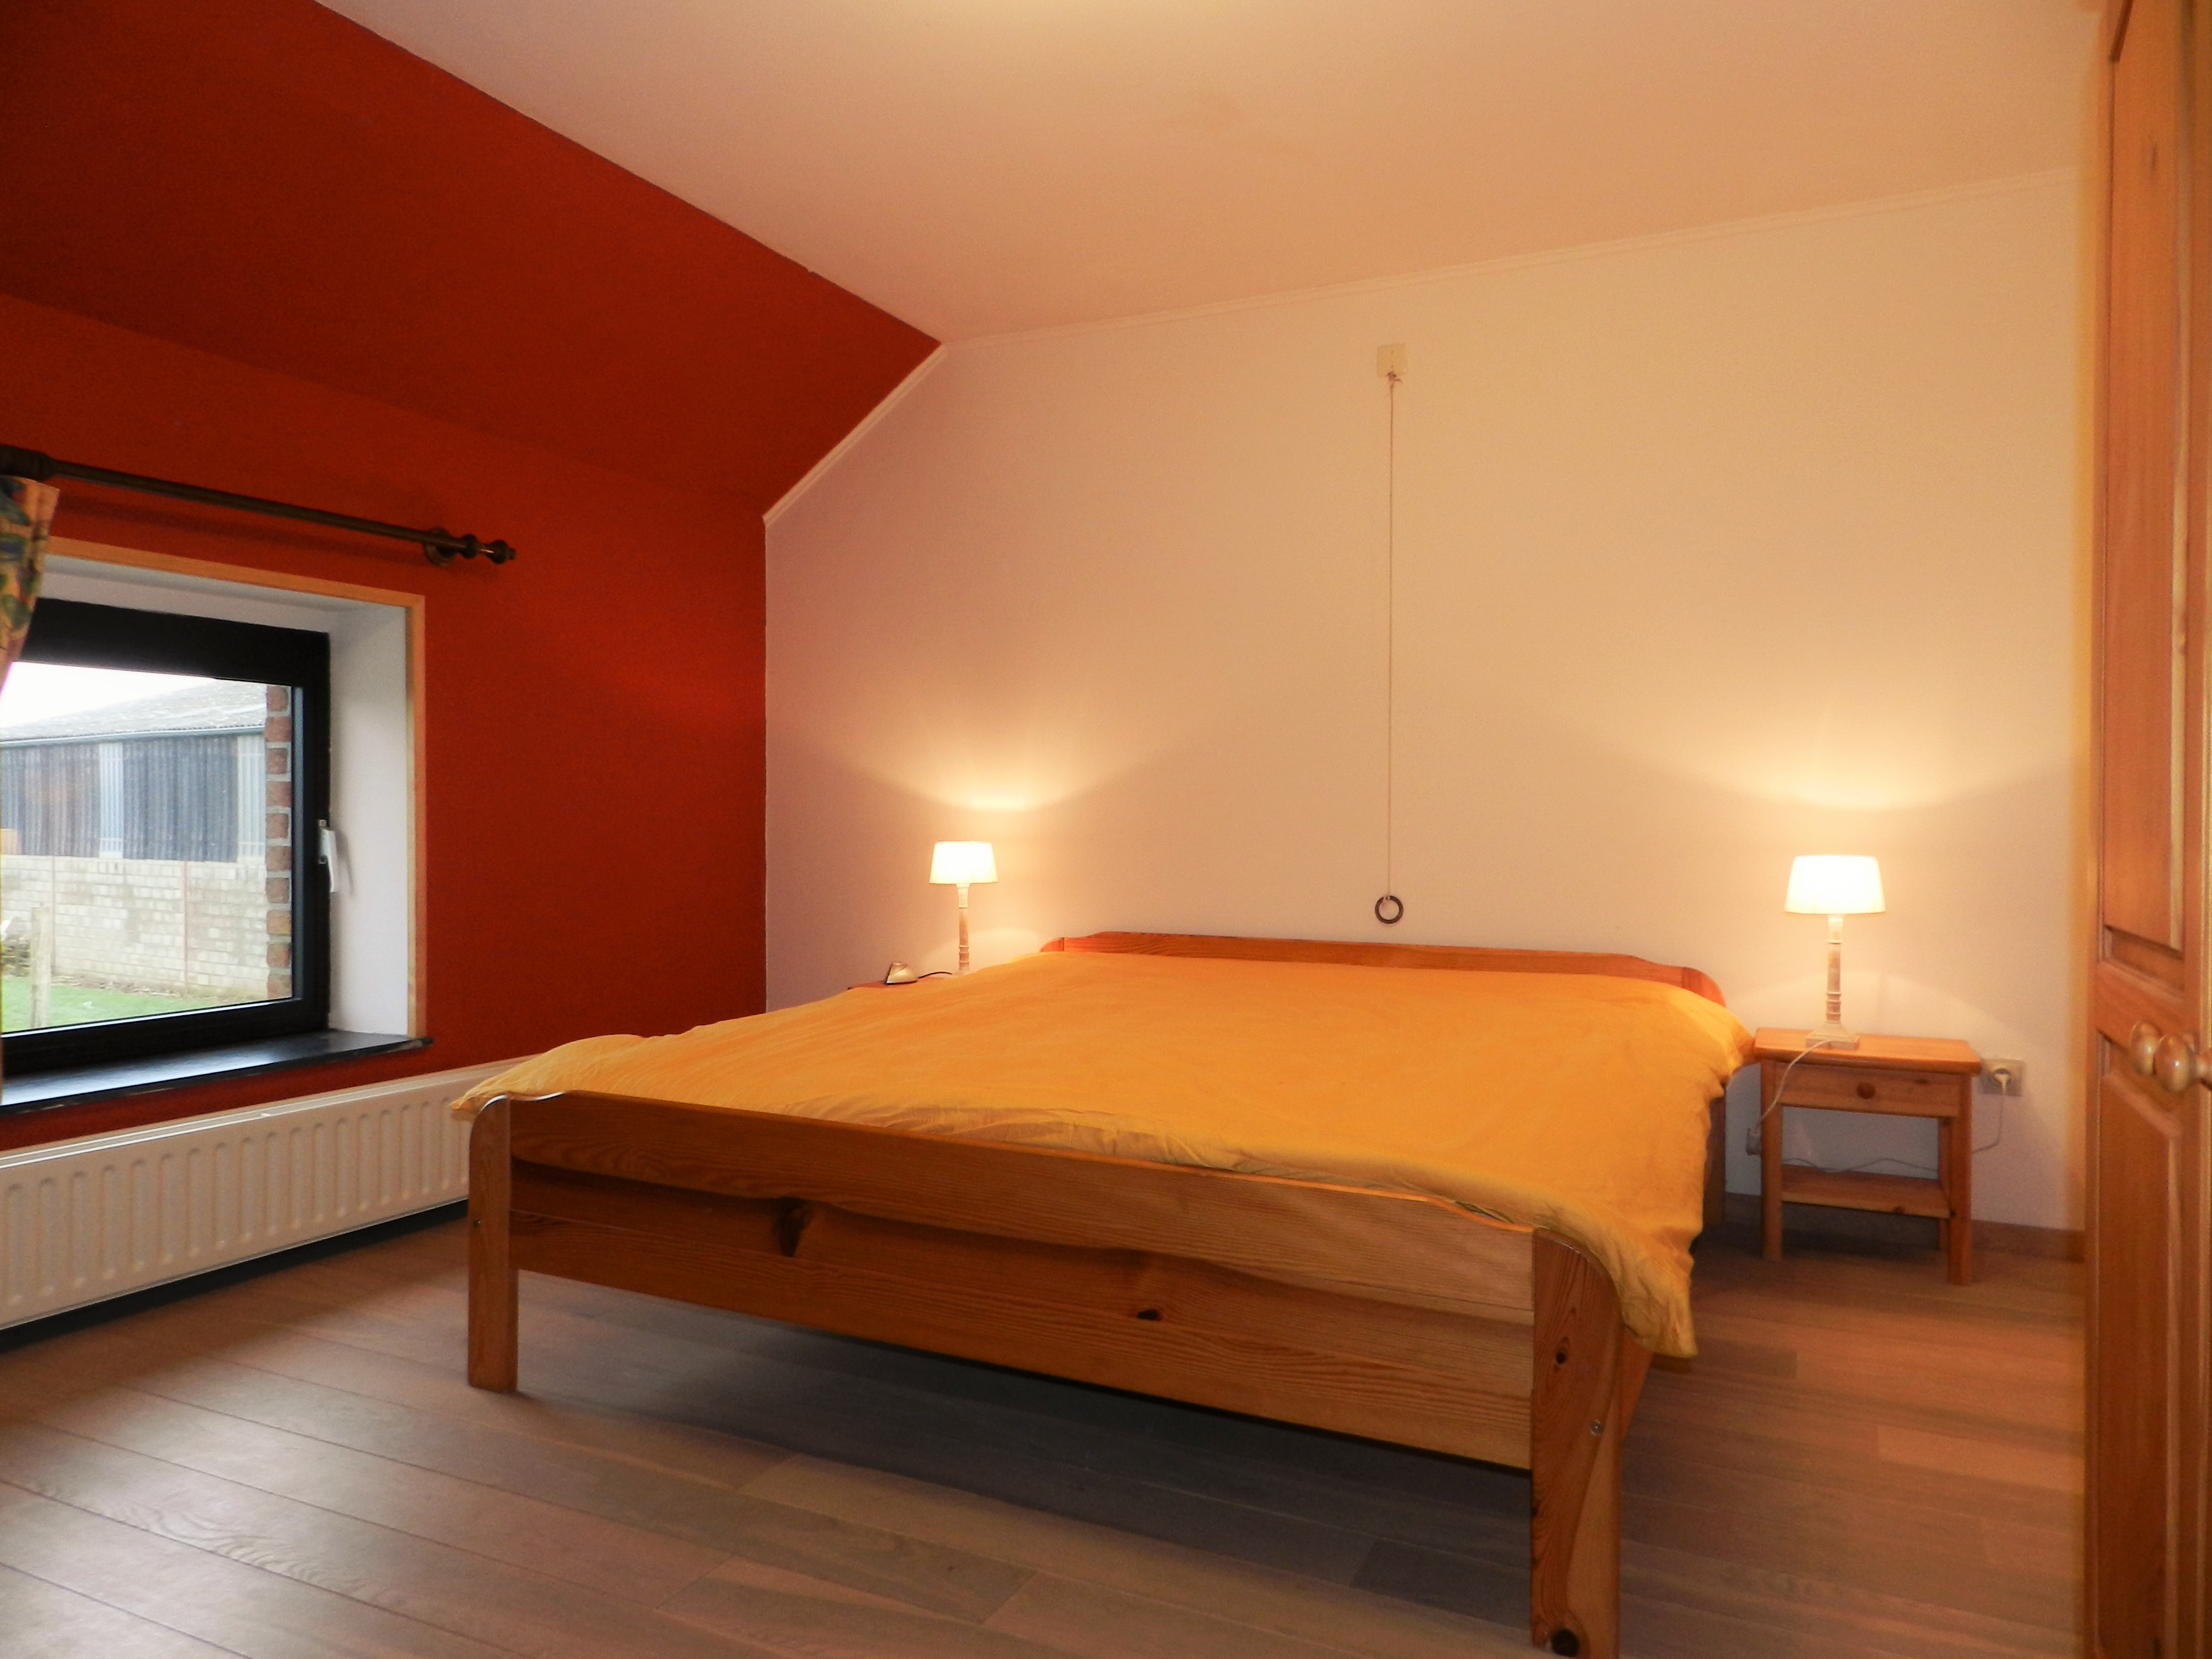 Chambre_rouge1